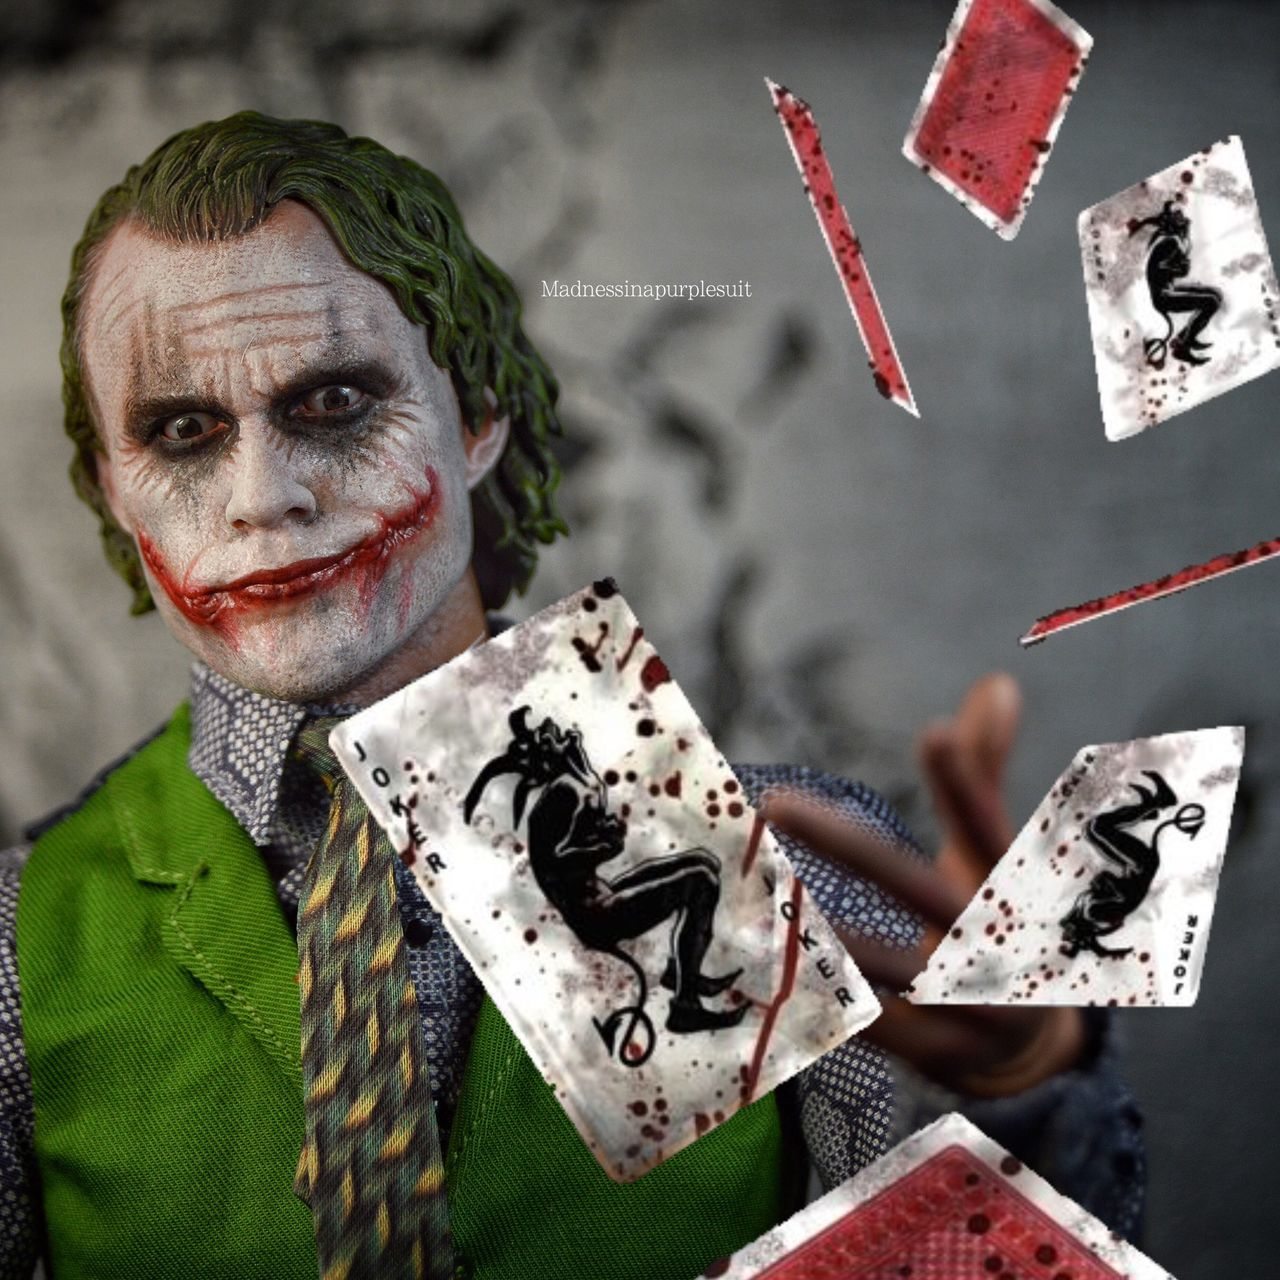 A little Joker action. Not only did I use my Heath ledger Joker from hot toys; I also Photoshop the cards being thrown. Photography Photographer Joker Thejoker Clownprinceofcrime Arkhamasylum